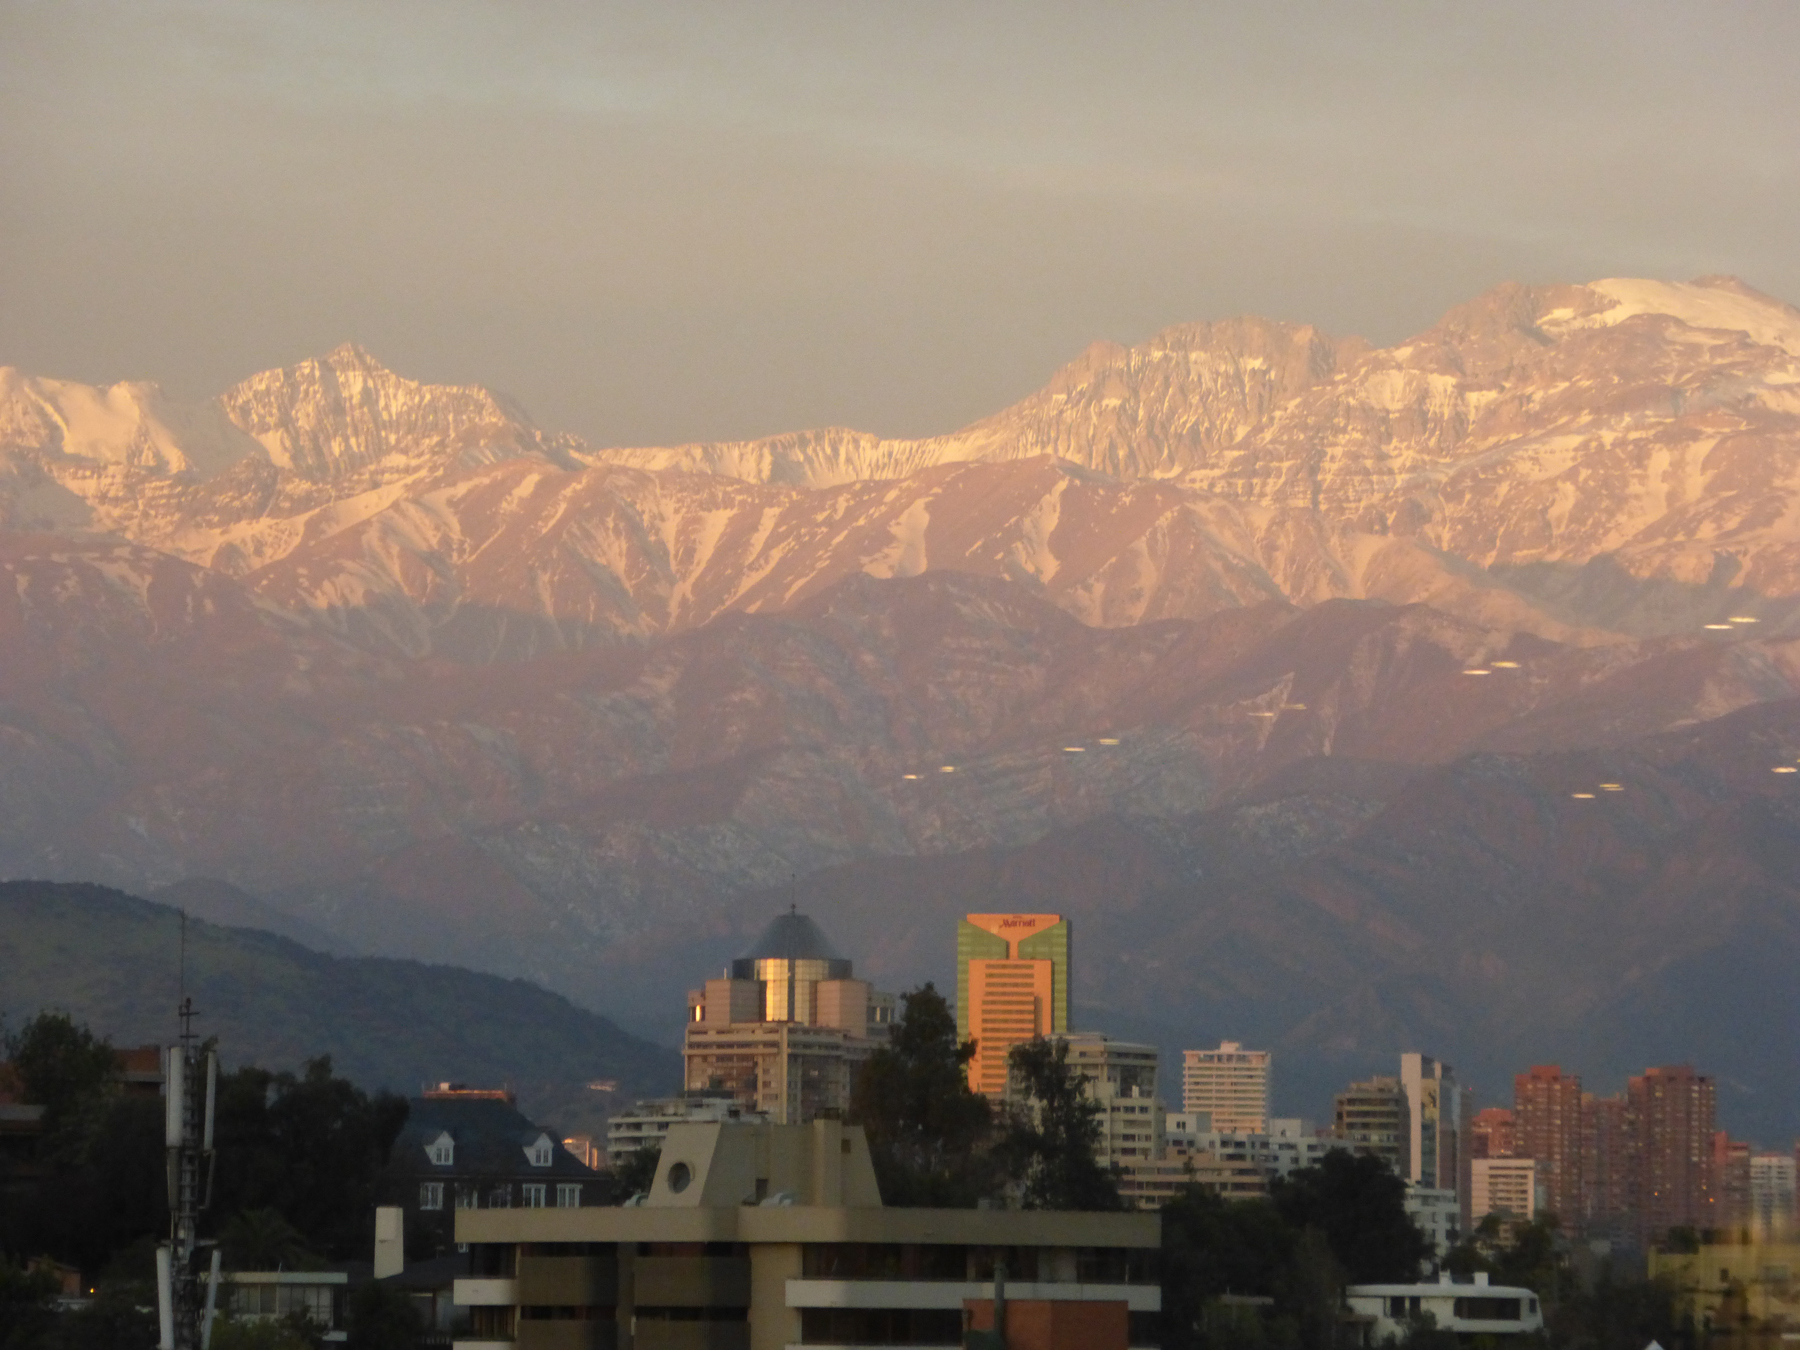 One last view of The Andes from Santiago. We leave in the morning for the coast and Puerto Montt!